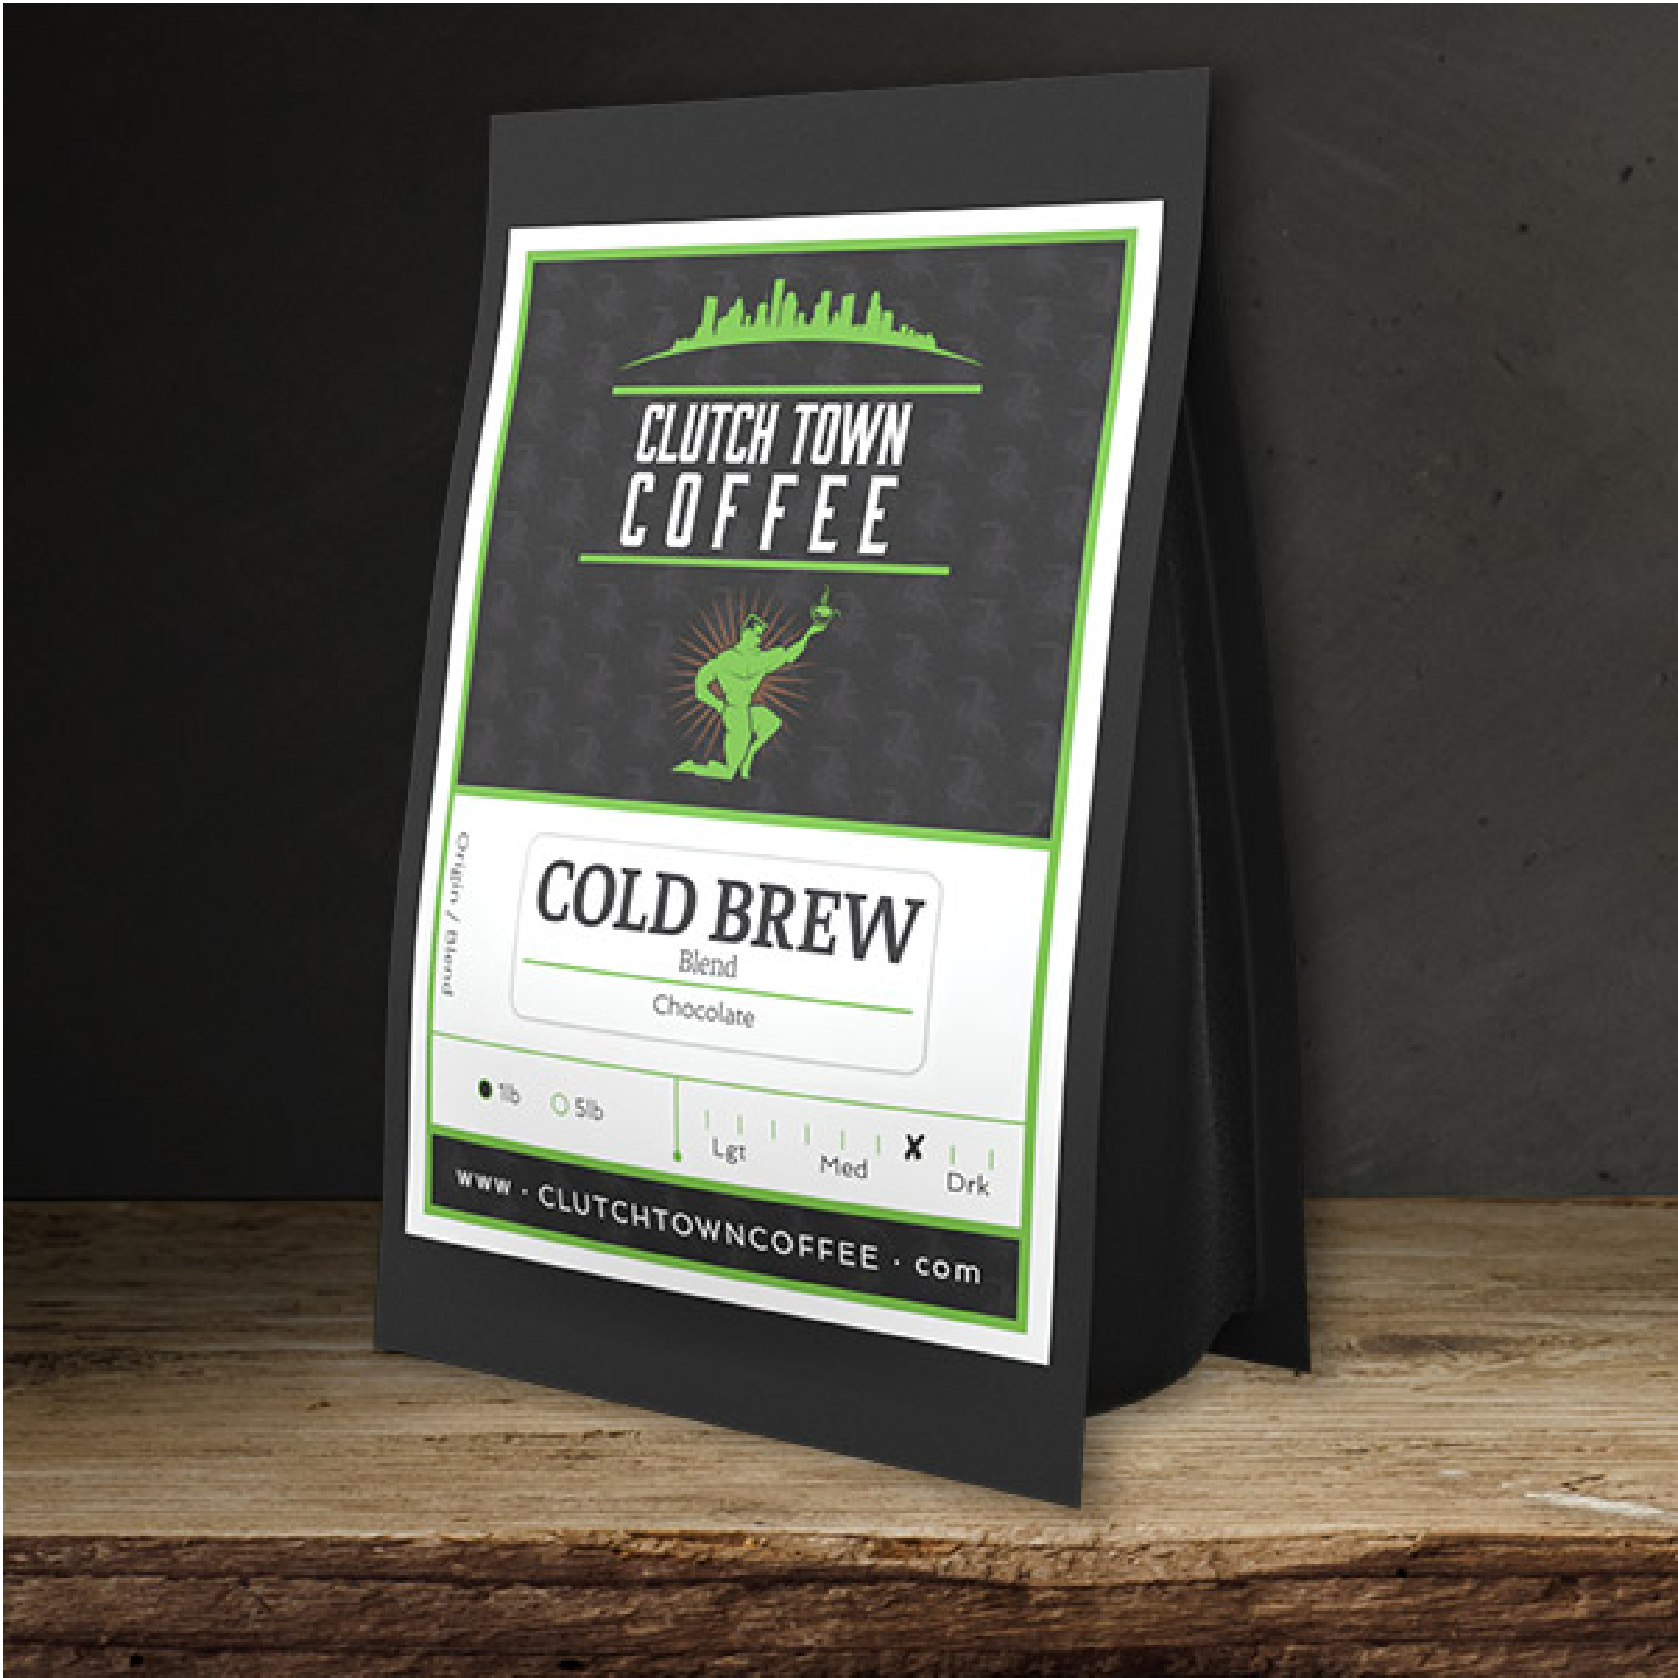 Cold Brew from Clutch Town Coffee